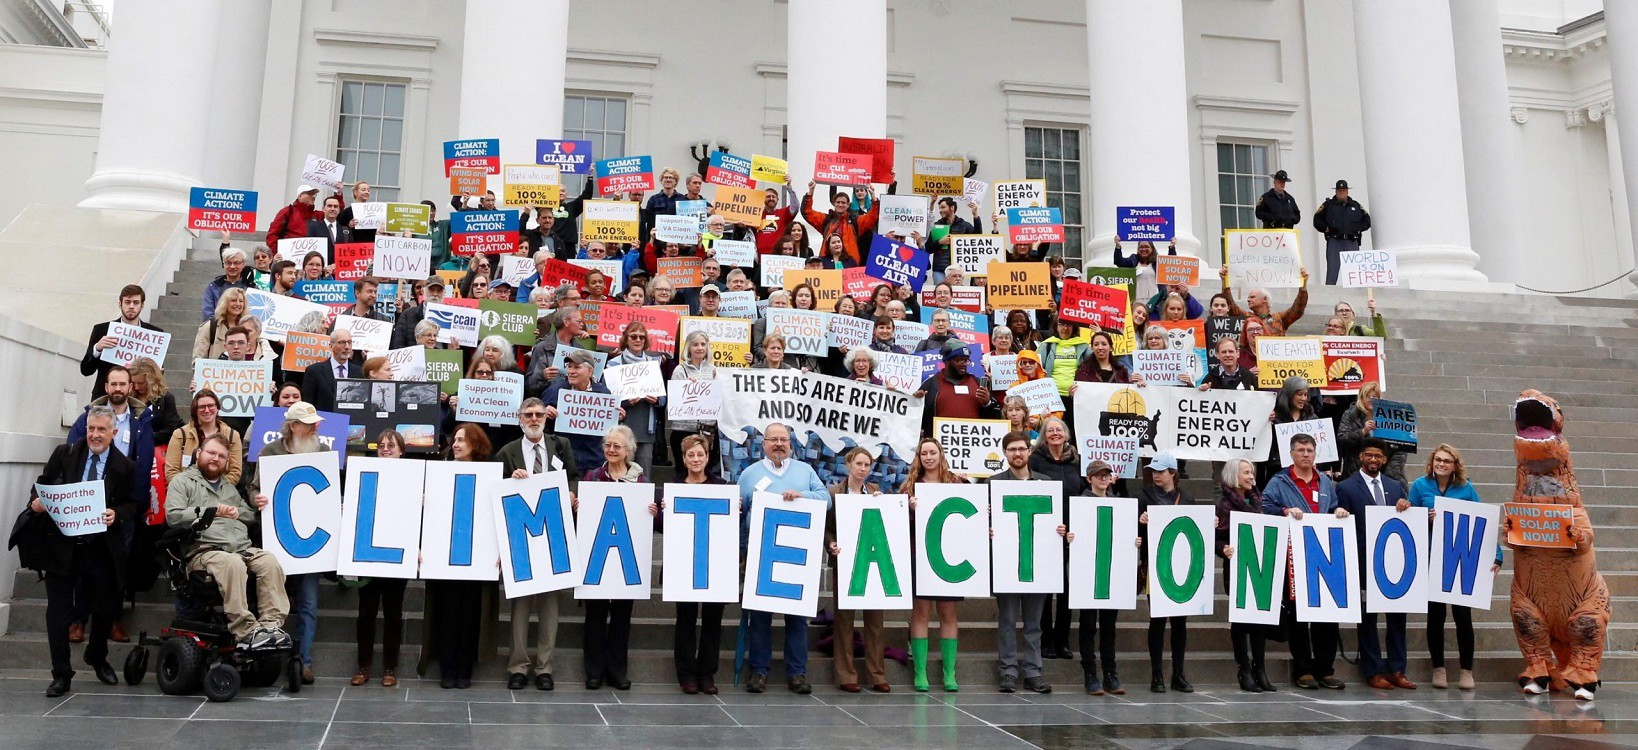 A crowd holds up signs expressing their support for climate action and 100% clean energy.